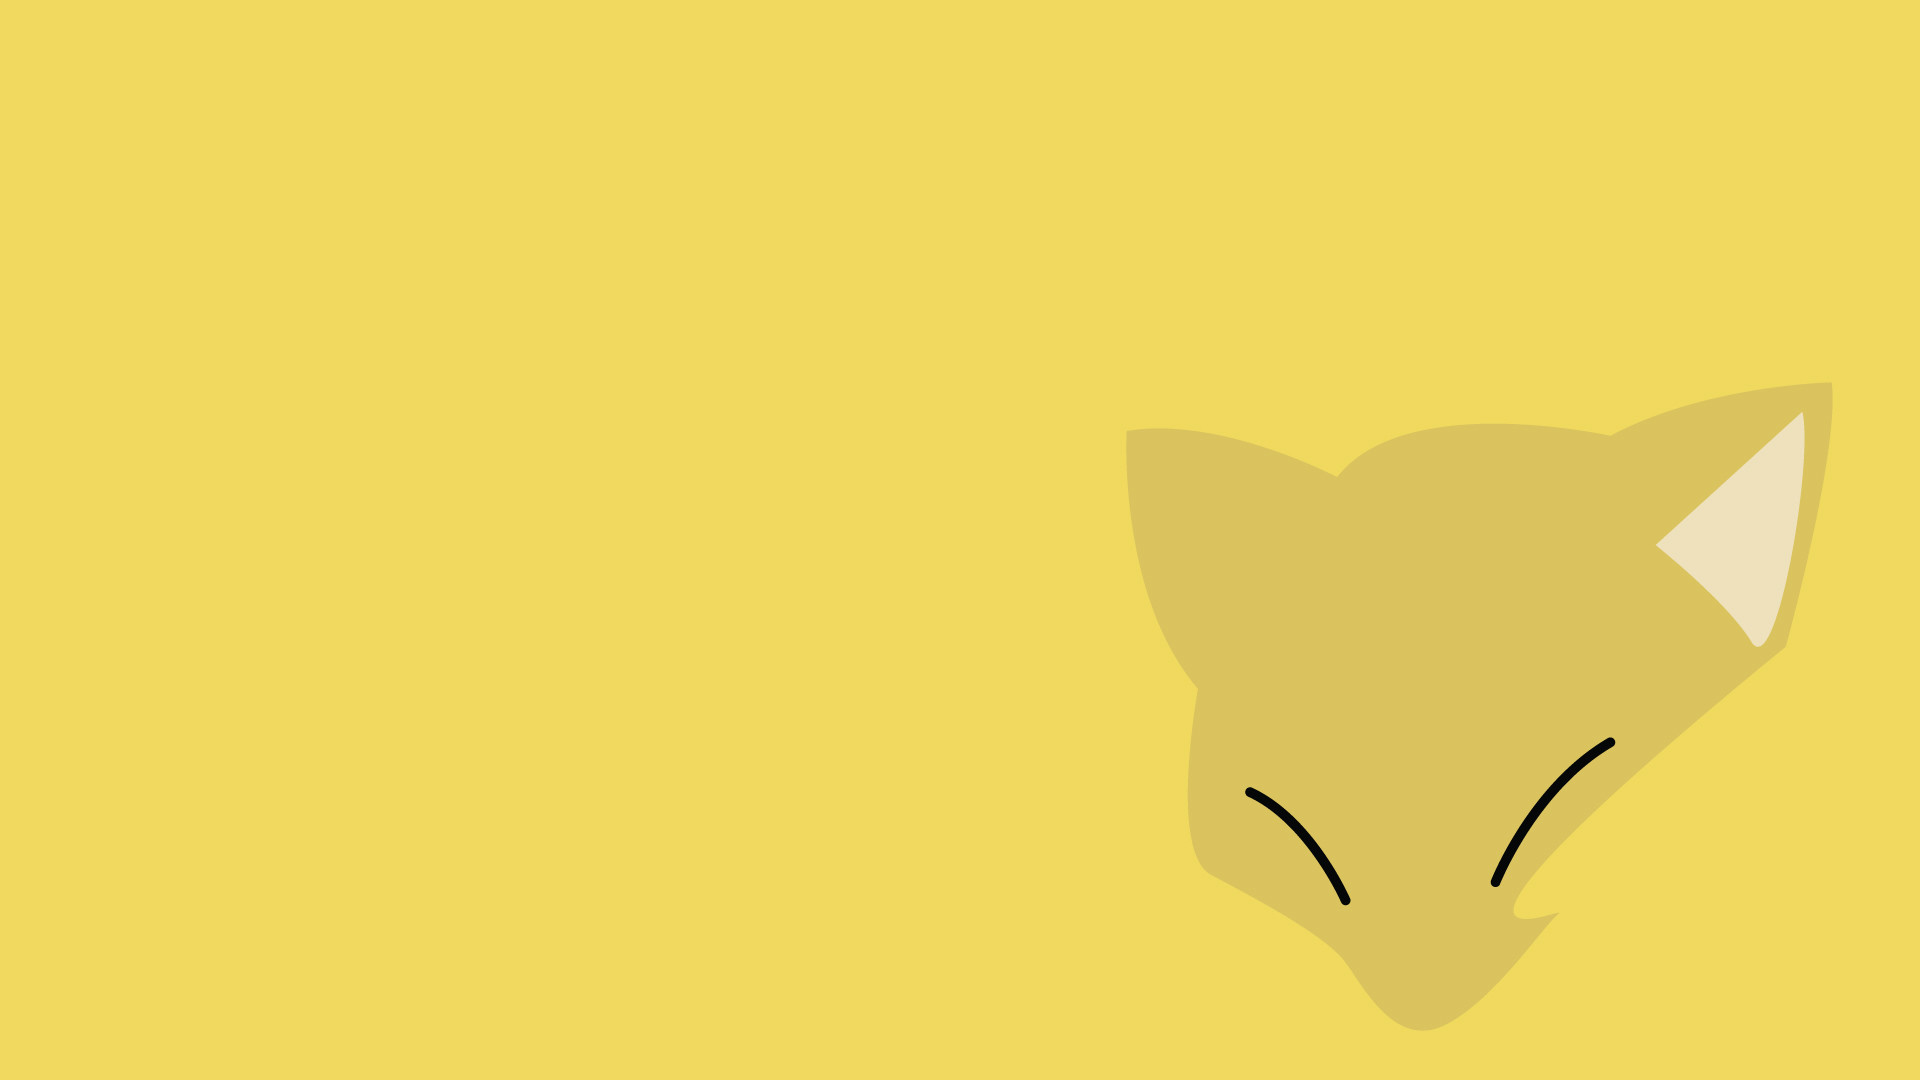 Pokemon Minimalist Wallpapers (81+ images)